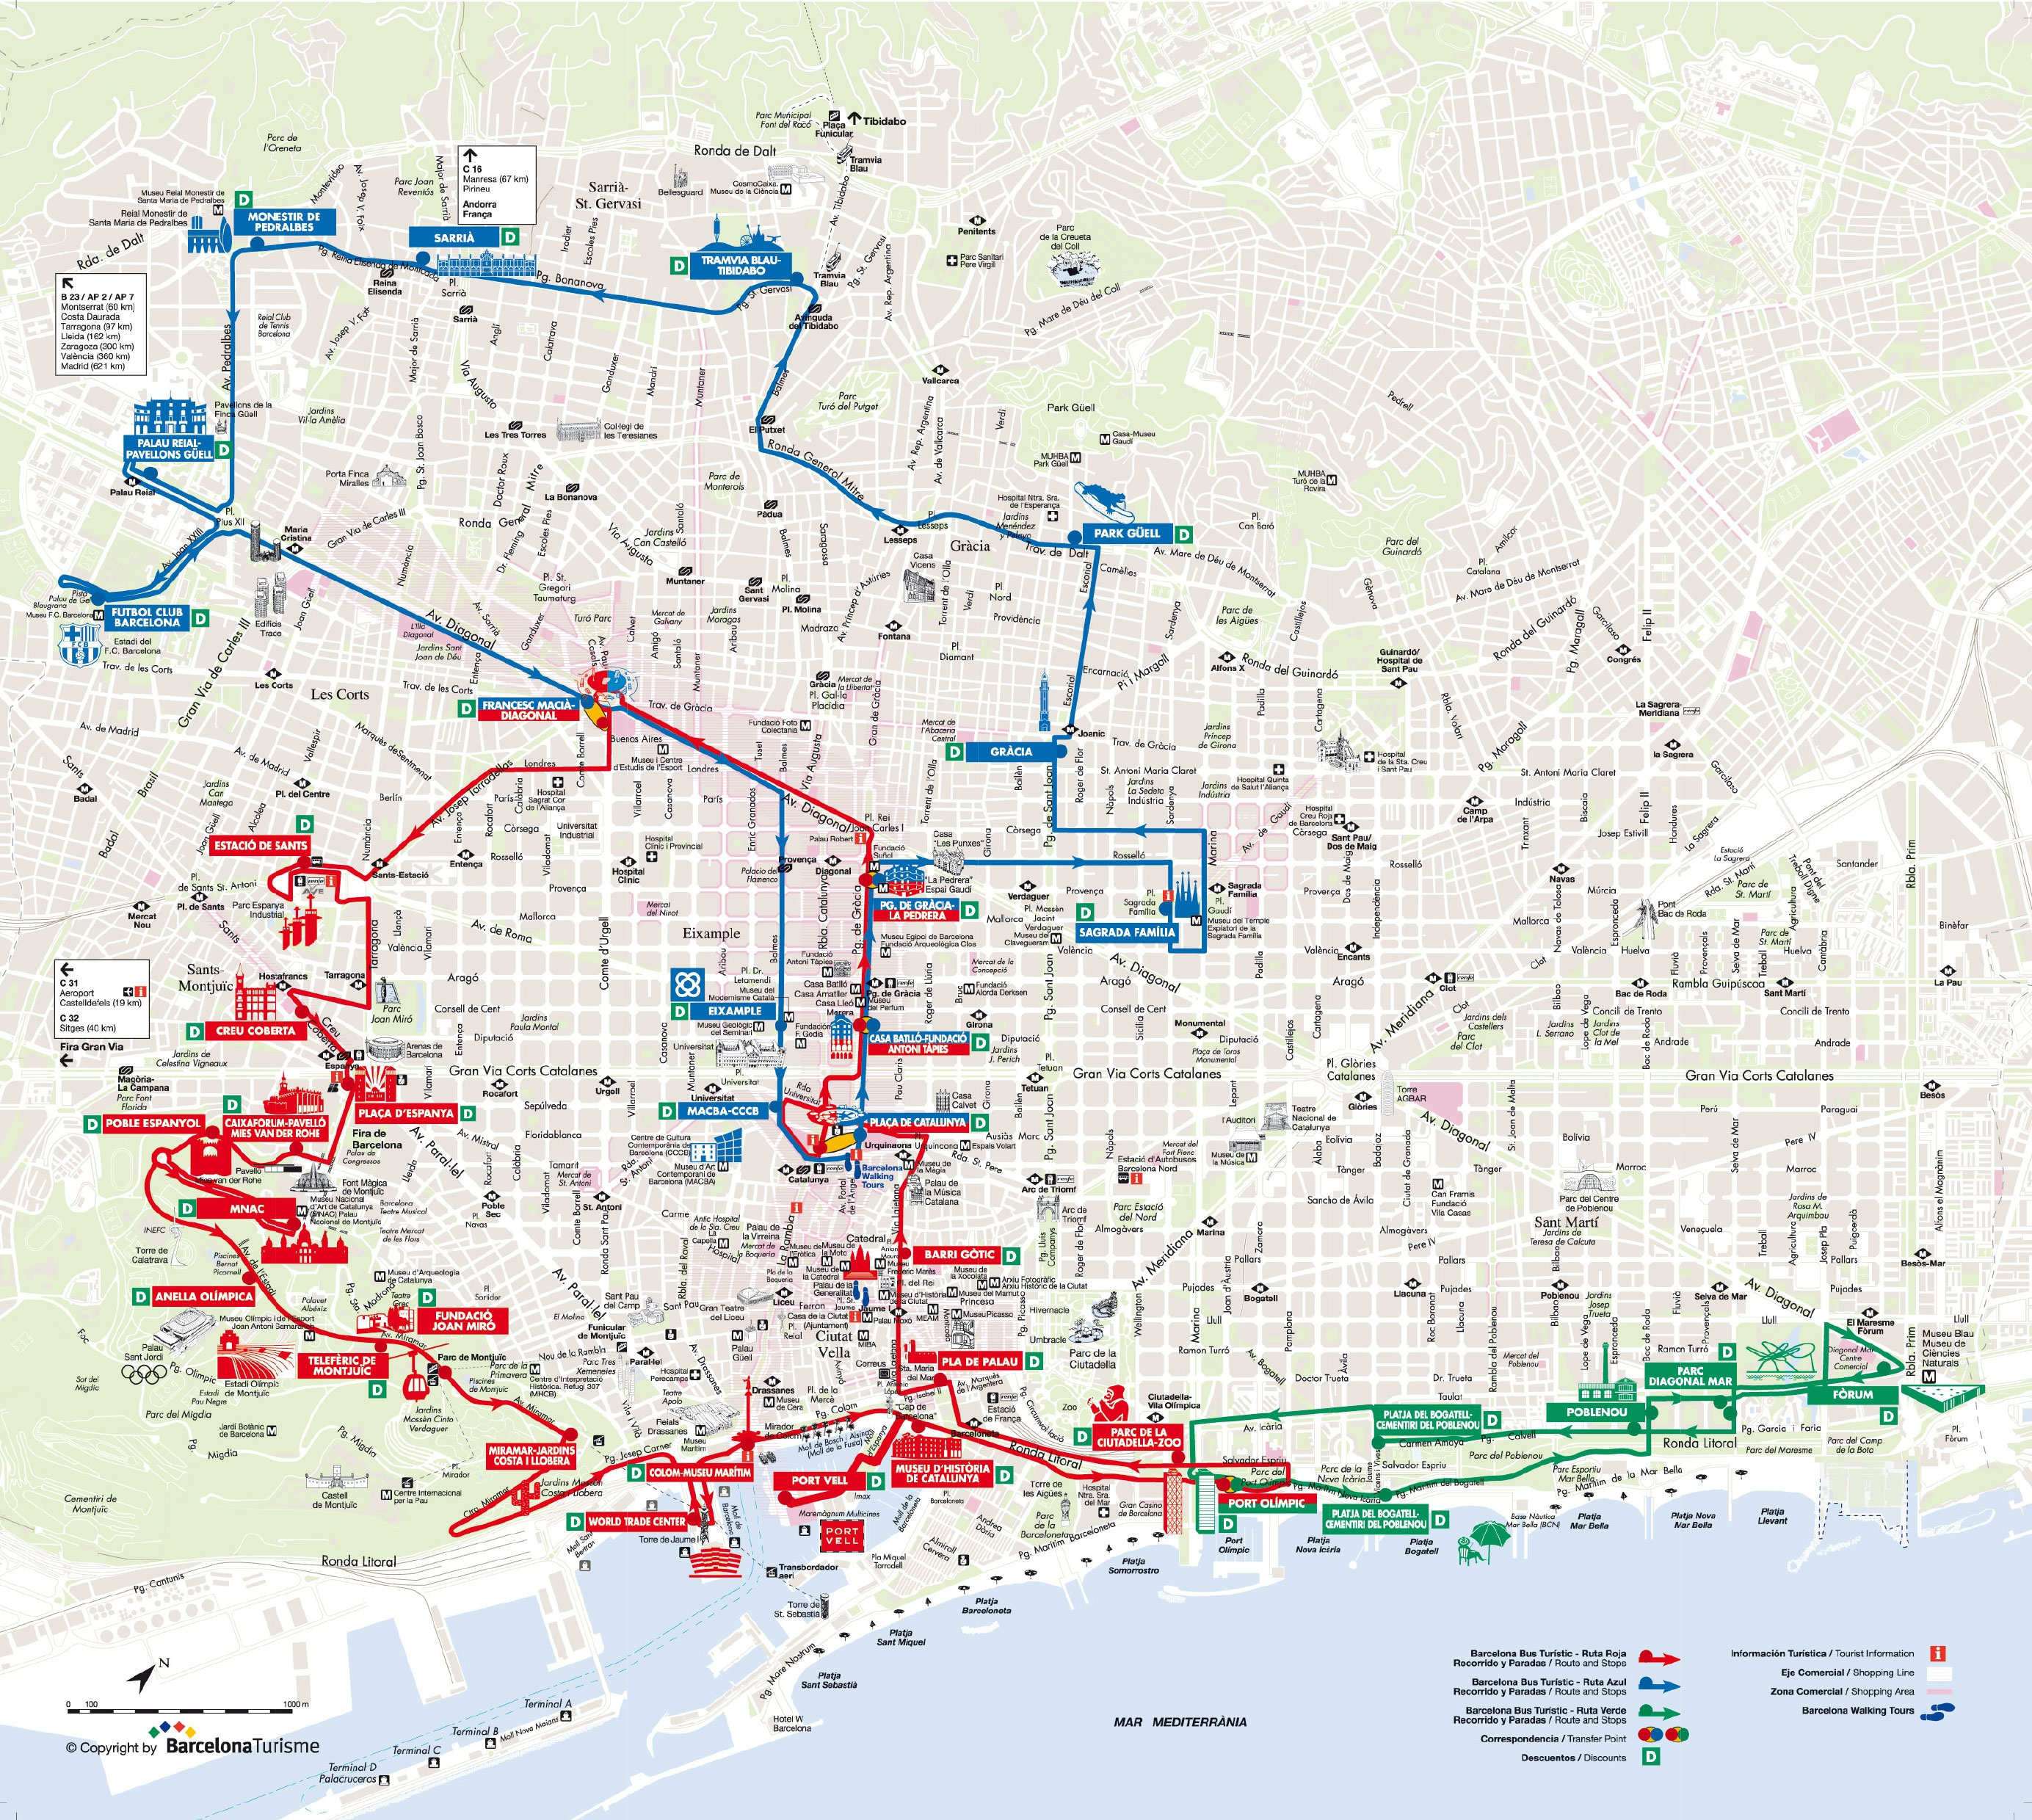 Map of Barcelona tourist attractions sightseeing  tourist tour